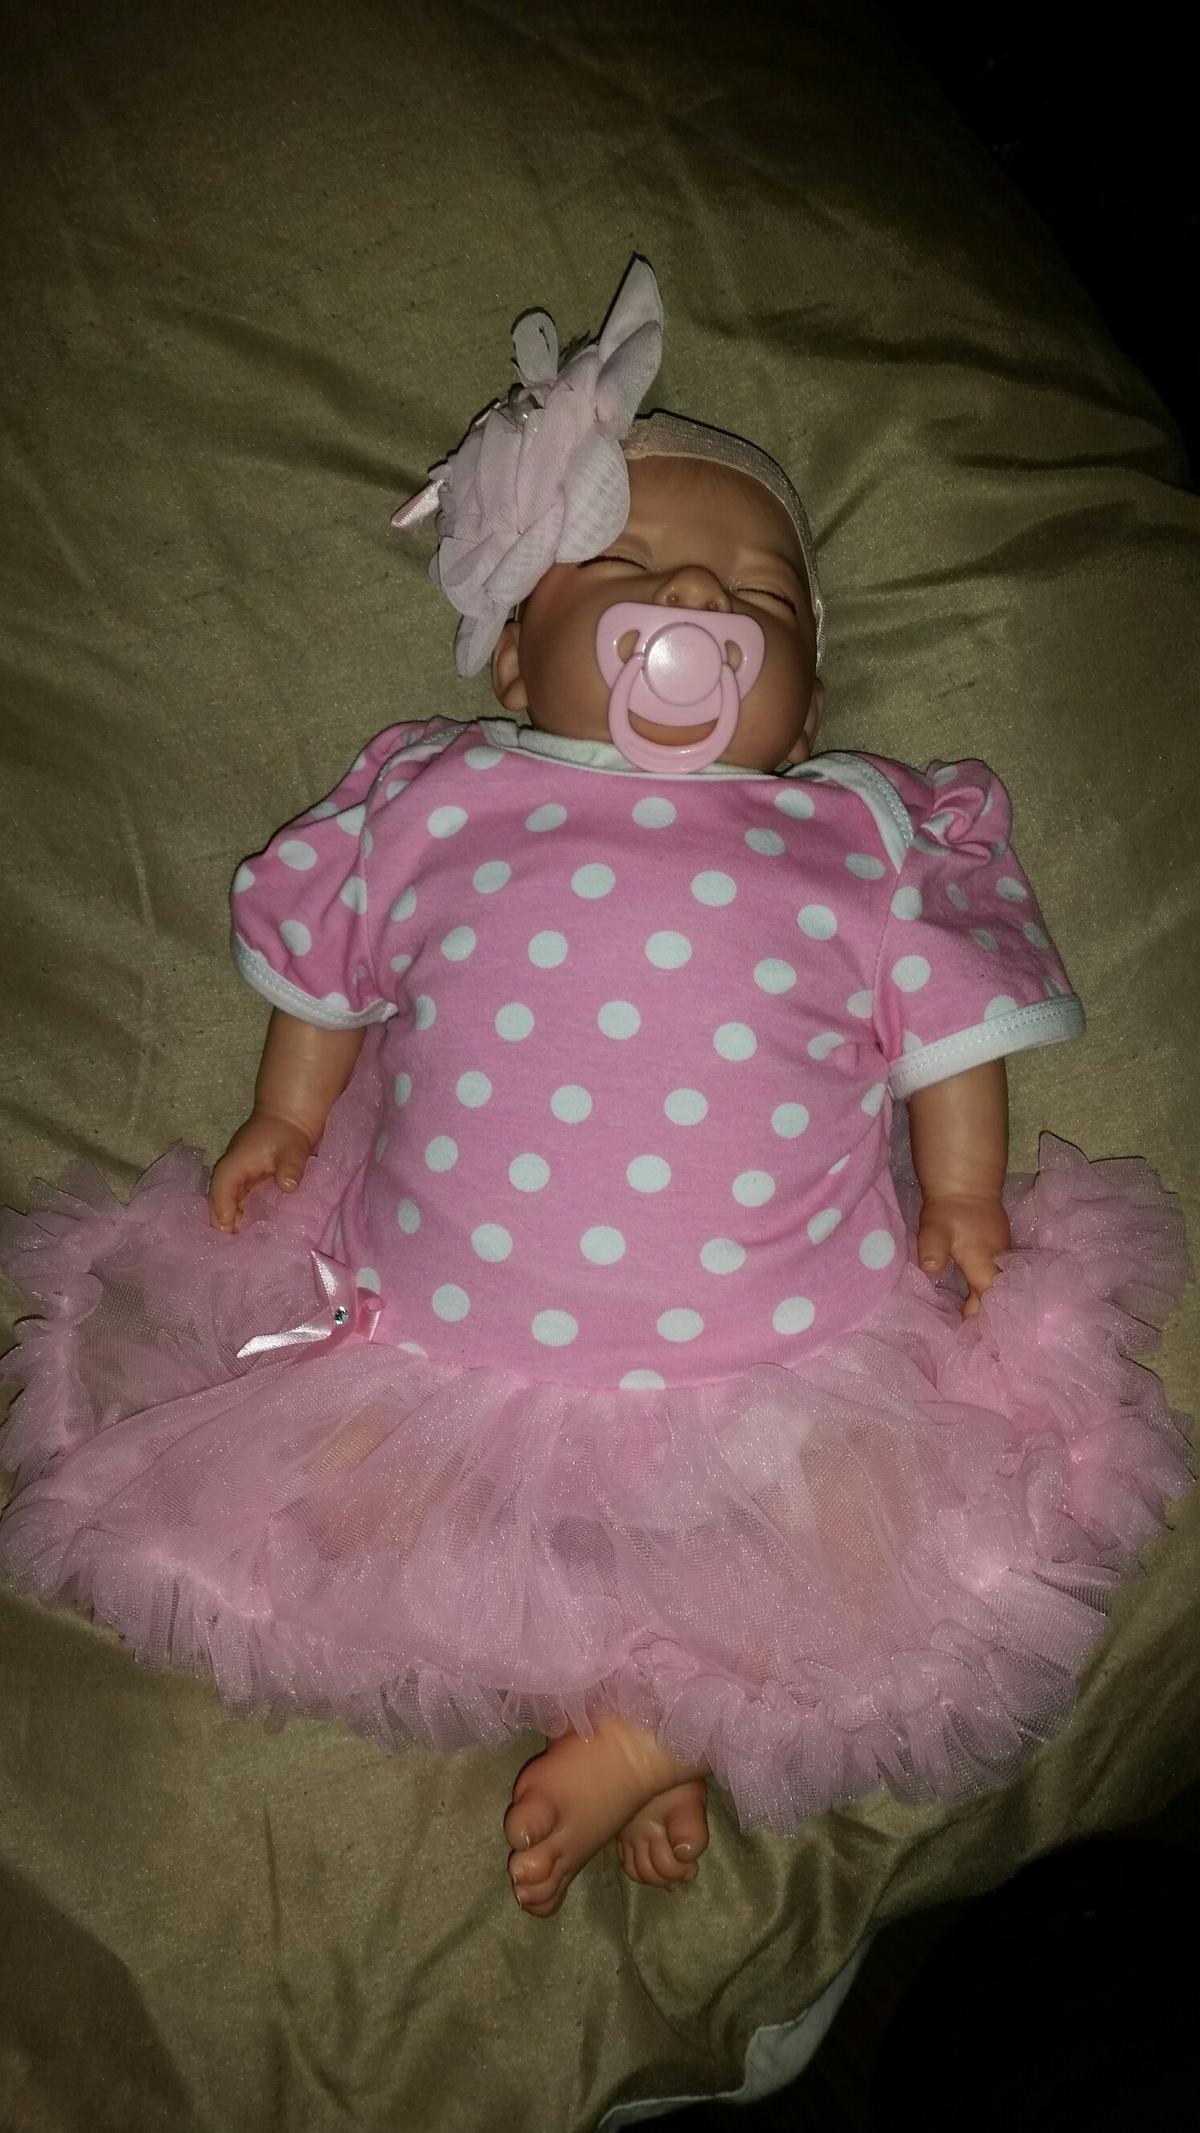 db1cd9482 Reborn sunbeambabies doll in S30 Sheffield for £90.00 for sale - Shpock